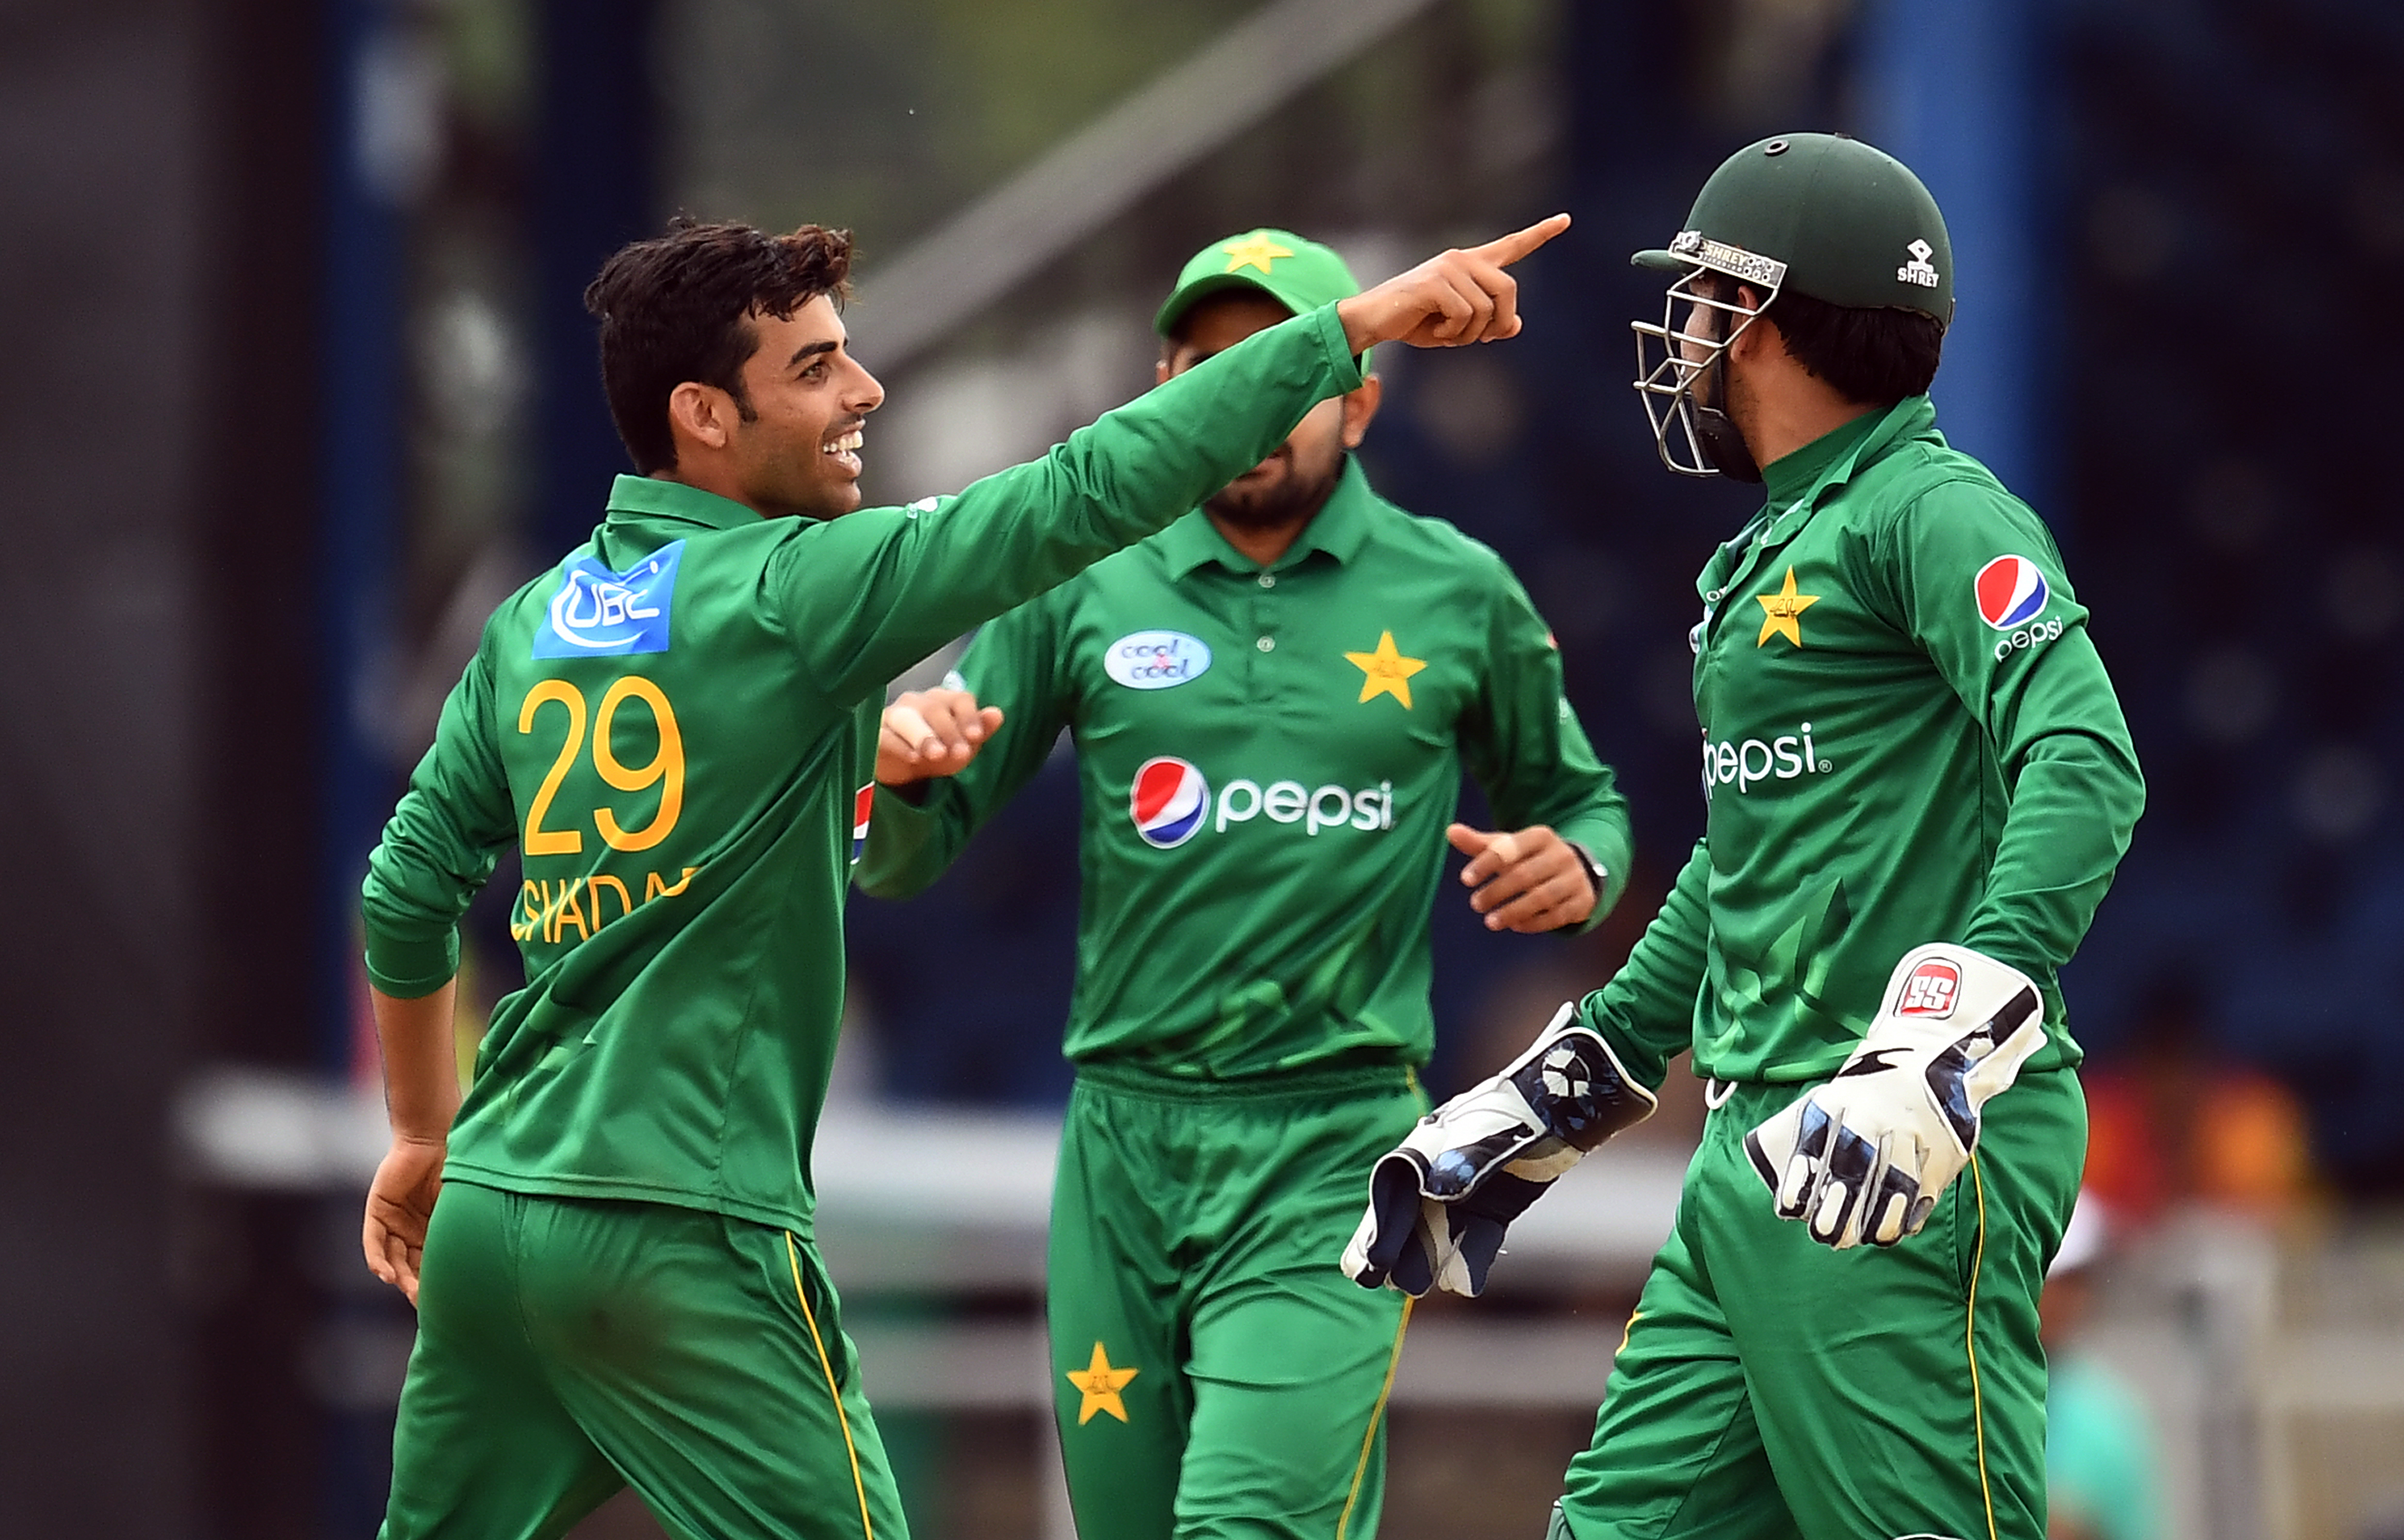 Pakistan's Shadab Khan (L) celebrates with teammates after dismissing West Indies' Kieron Pollard during the second of four-T20I-match between West Indies and Pakistan at the Queen's Park Oval in Port of Spain, Trinidad, on March 30, 2017. / AFP PHOTO / Jewel SAMAD